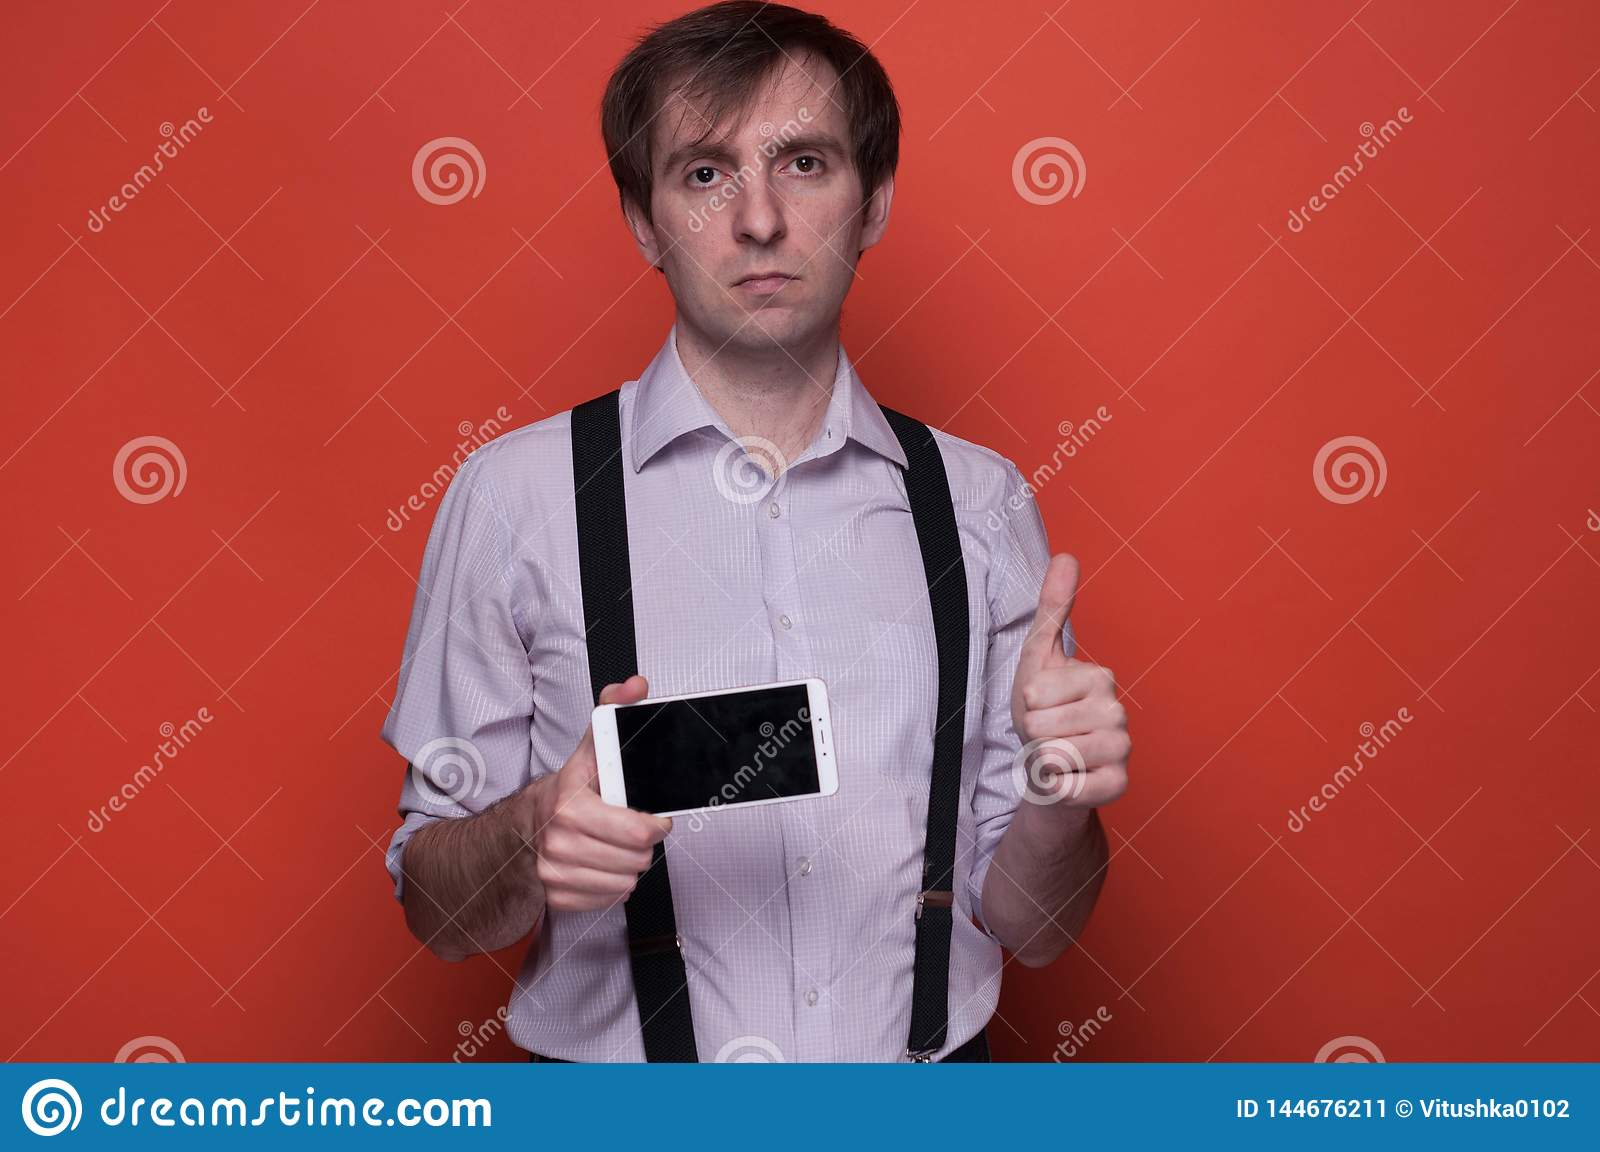 Man showing smartphone with blank screen and thumbing up